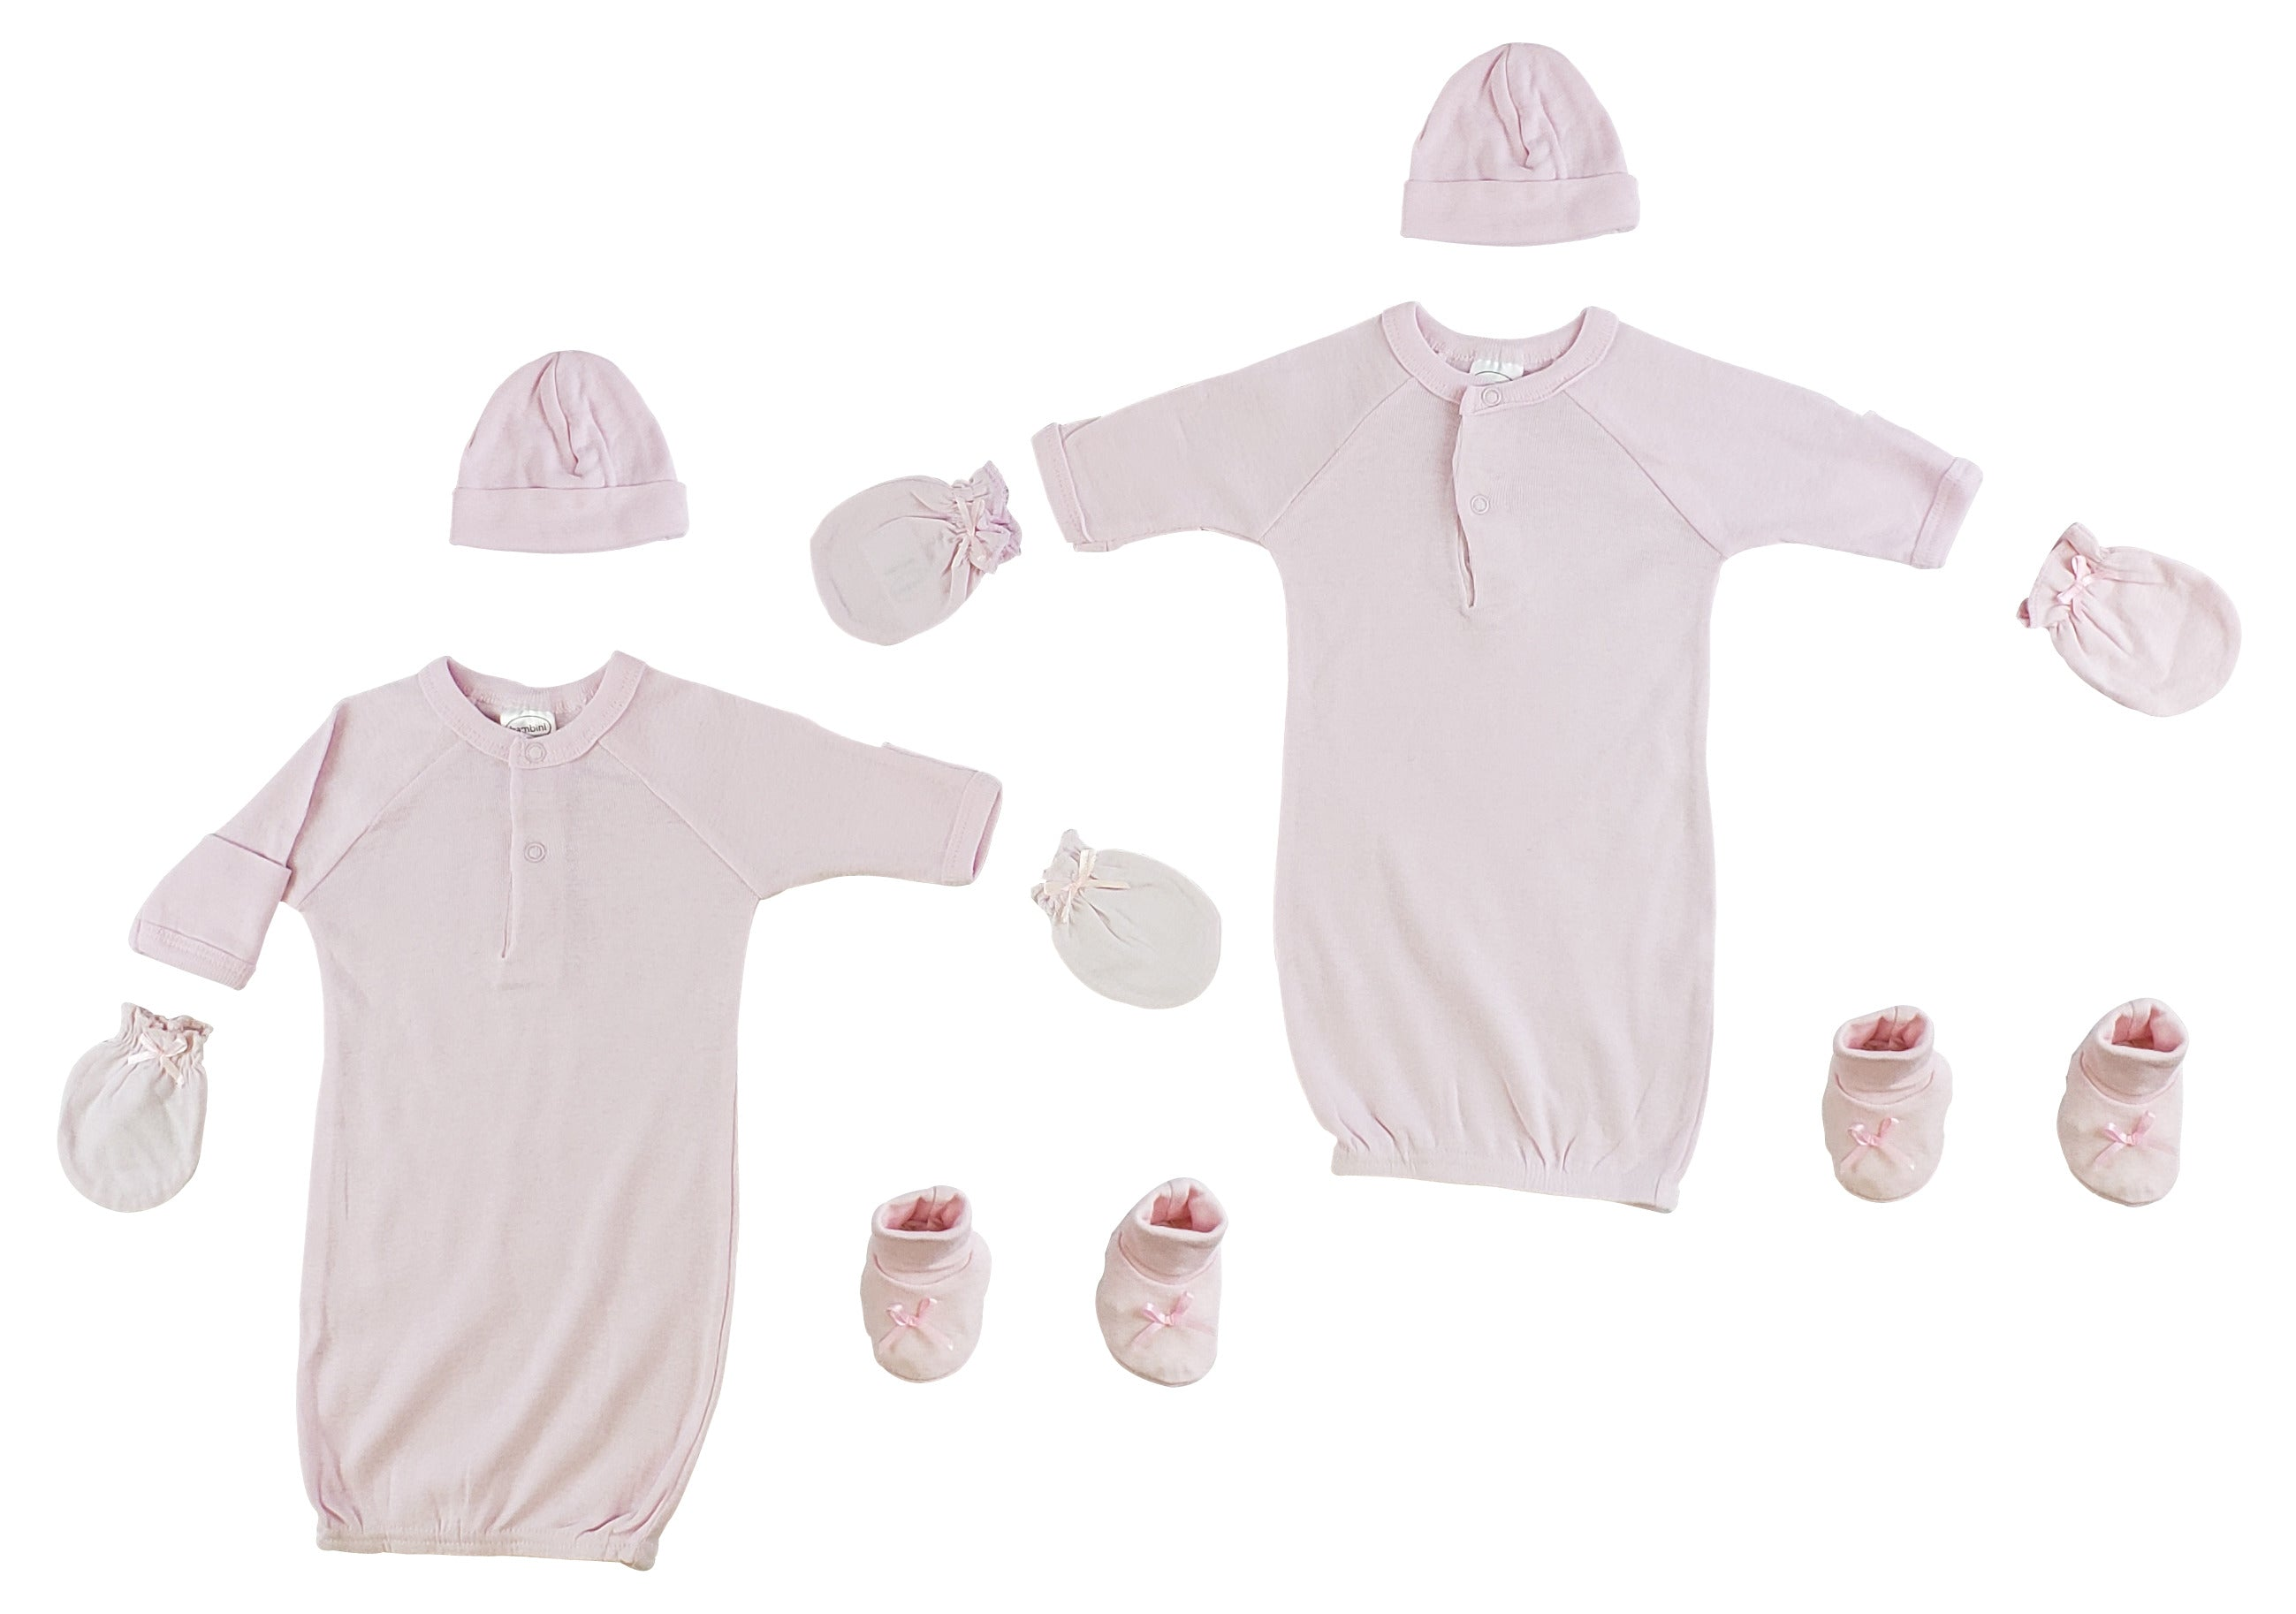 Preemie Gown, Cap, Mittens and Booties - 8 Pc Set